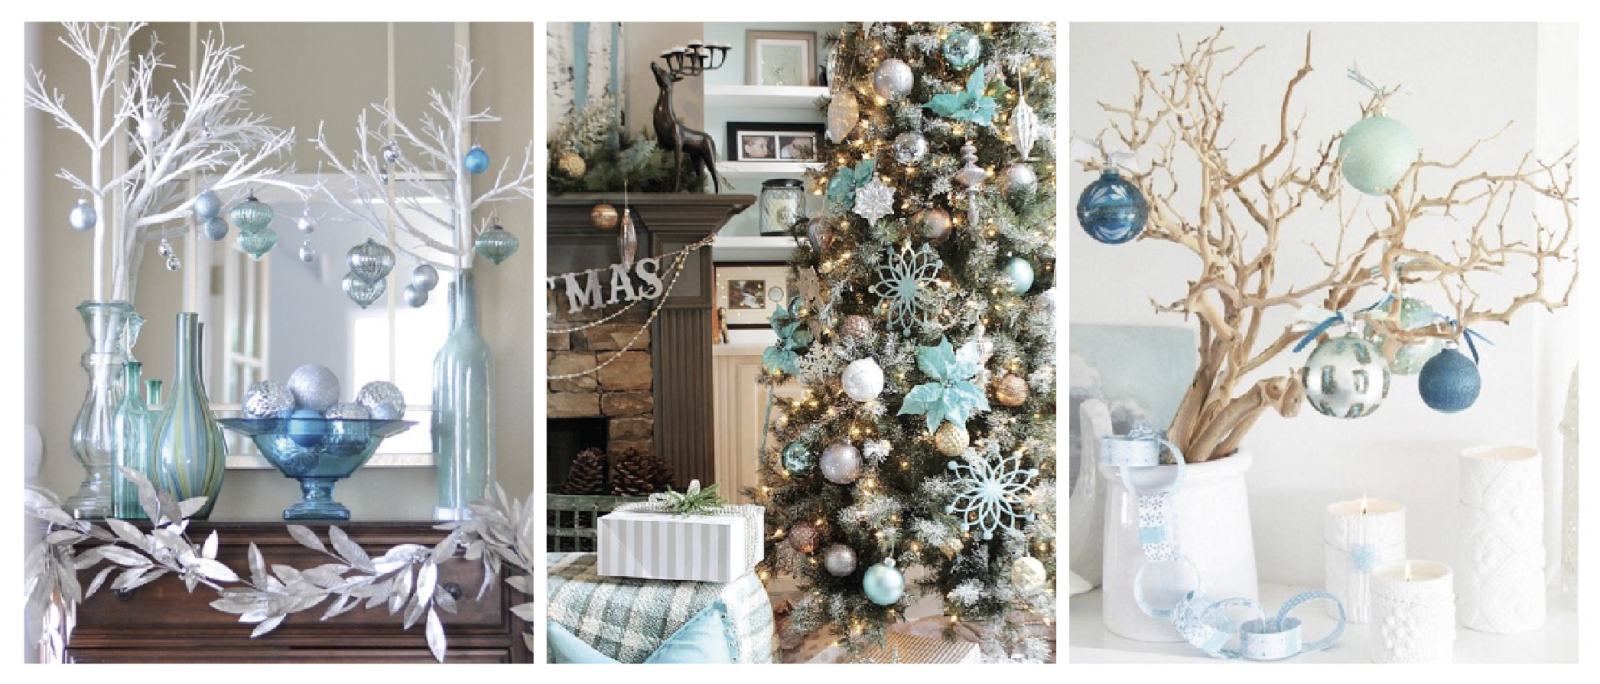 Decoration de noel tendance 2016 - Decoration sapin de noel tendance ...